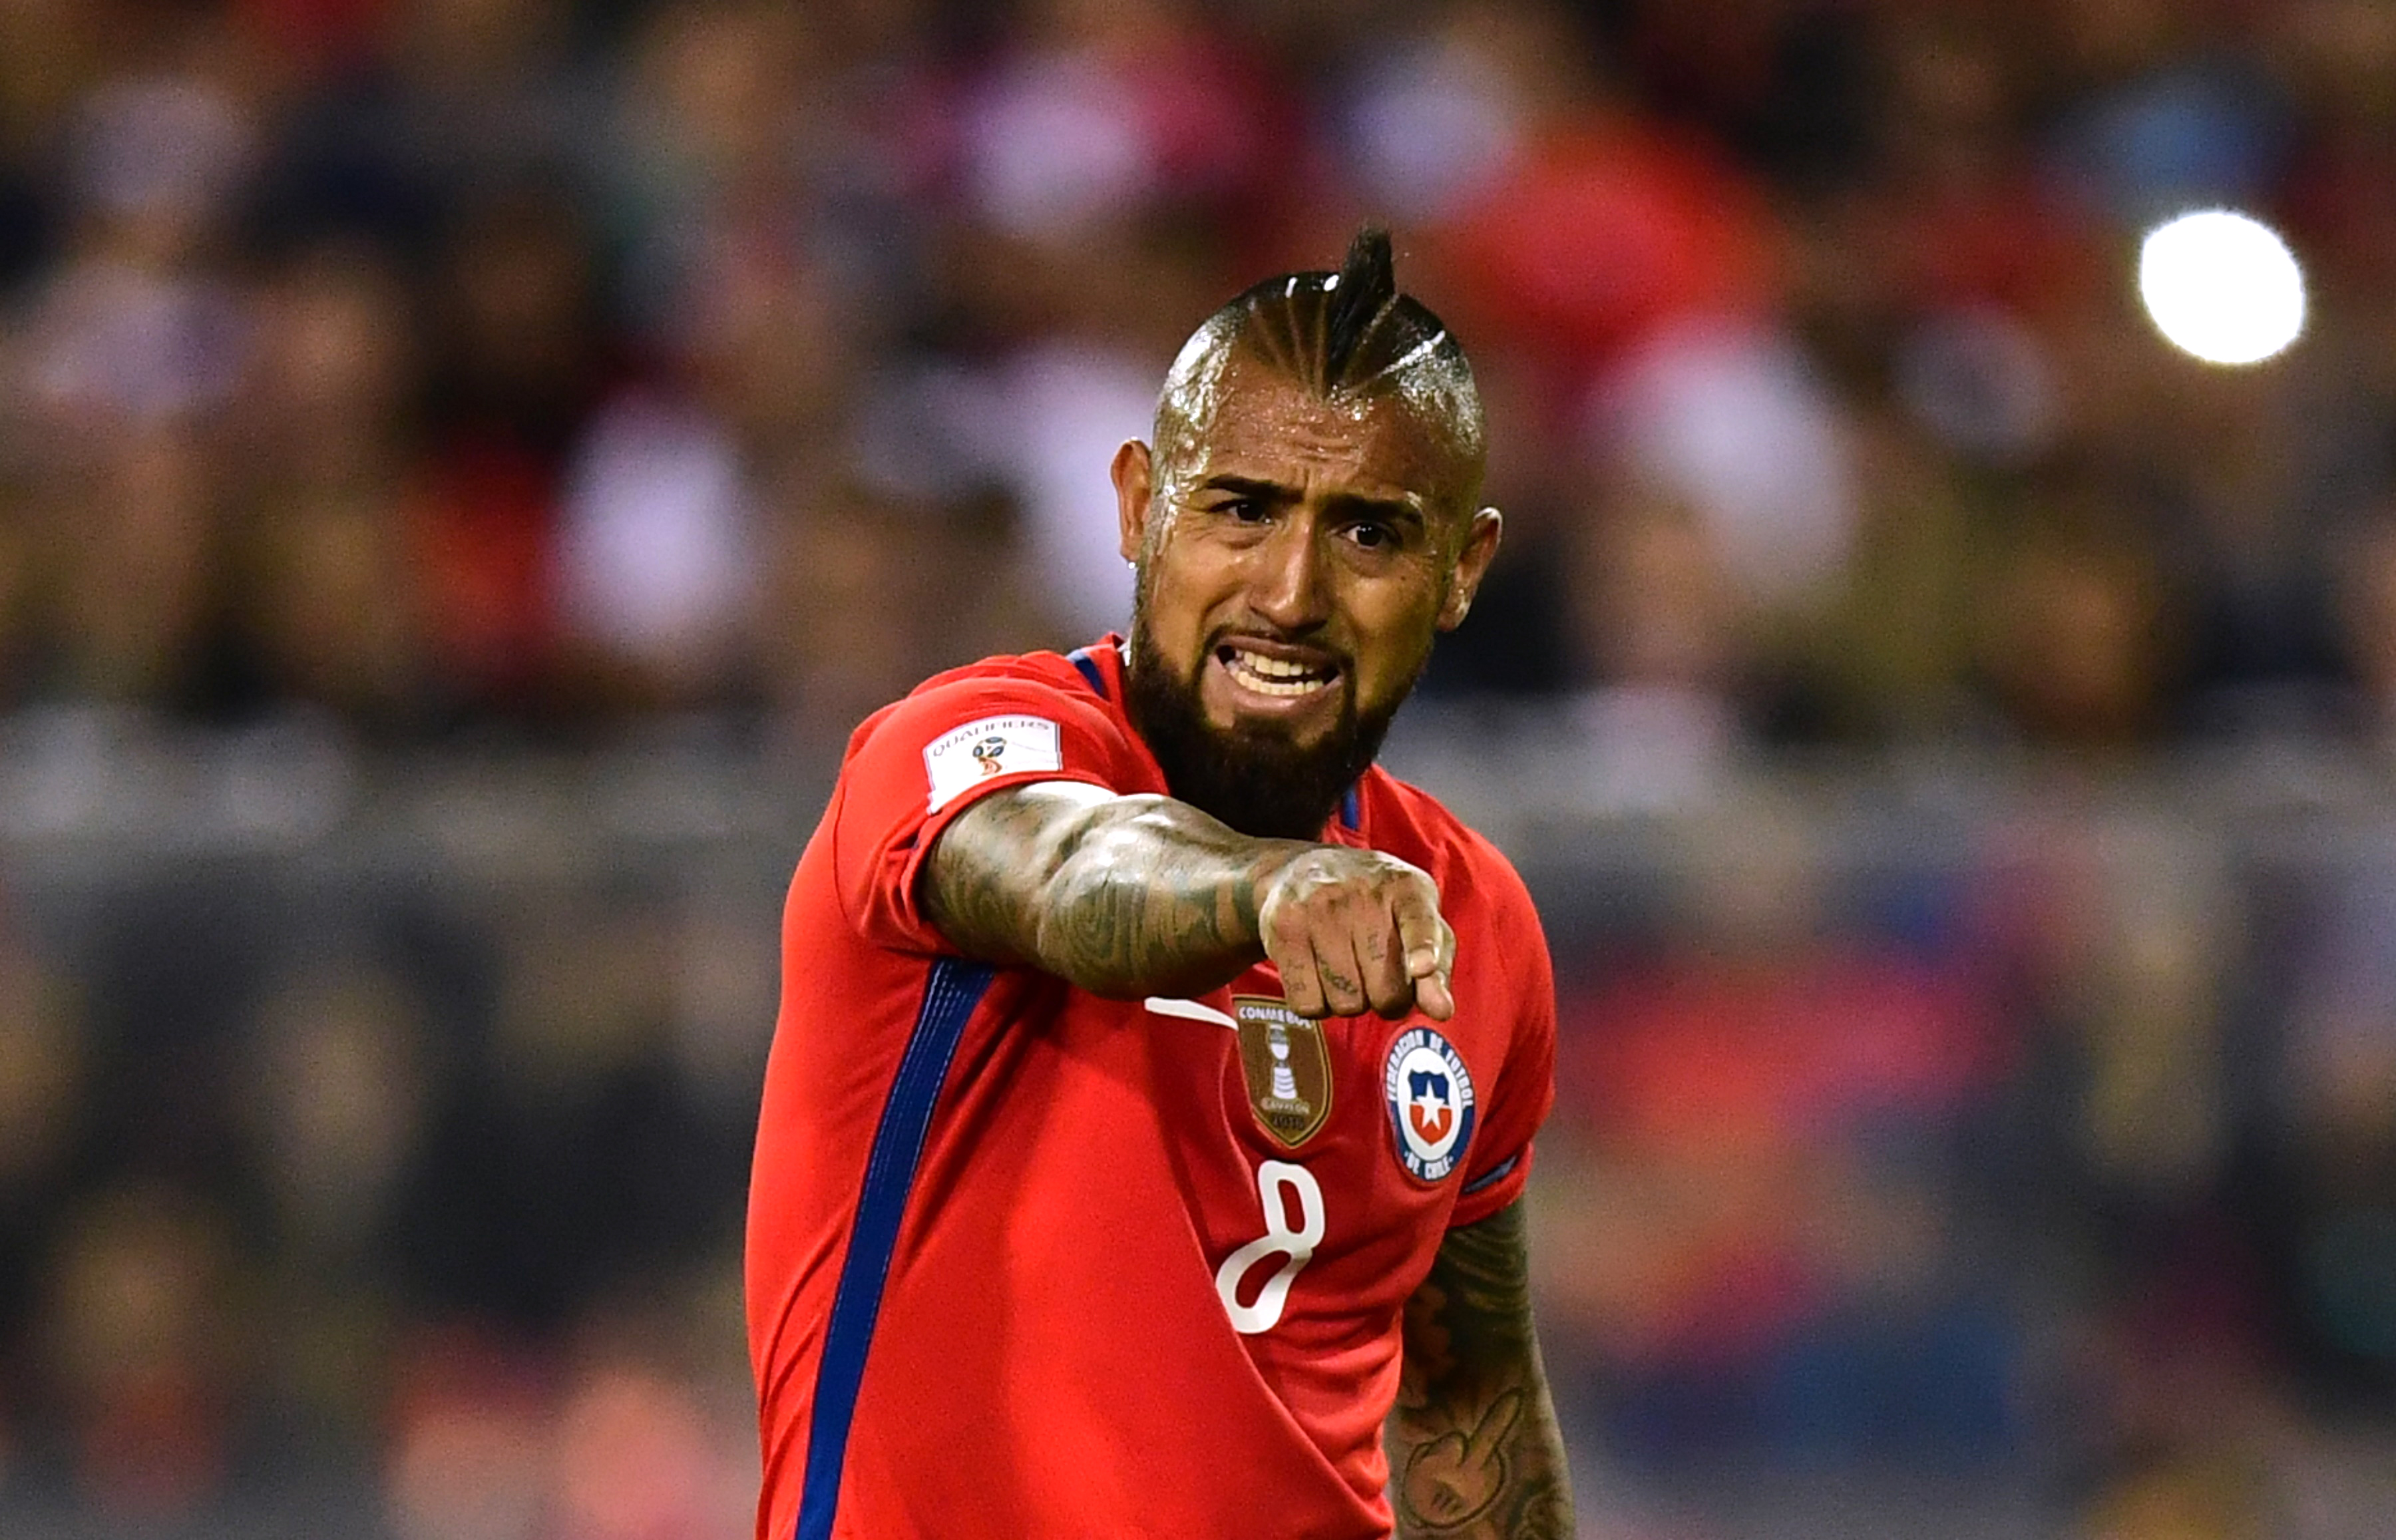 Chile's Arturo Vidal gestures during the 2018 World Cup qualifier football match against Paraguay, in Santiago, on August 31, 2017. / AFP PHOTO / Martin BERNETTI (Photo credit should read MARTIN BERNETTI/AFP/Getty Images)